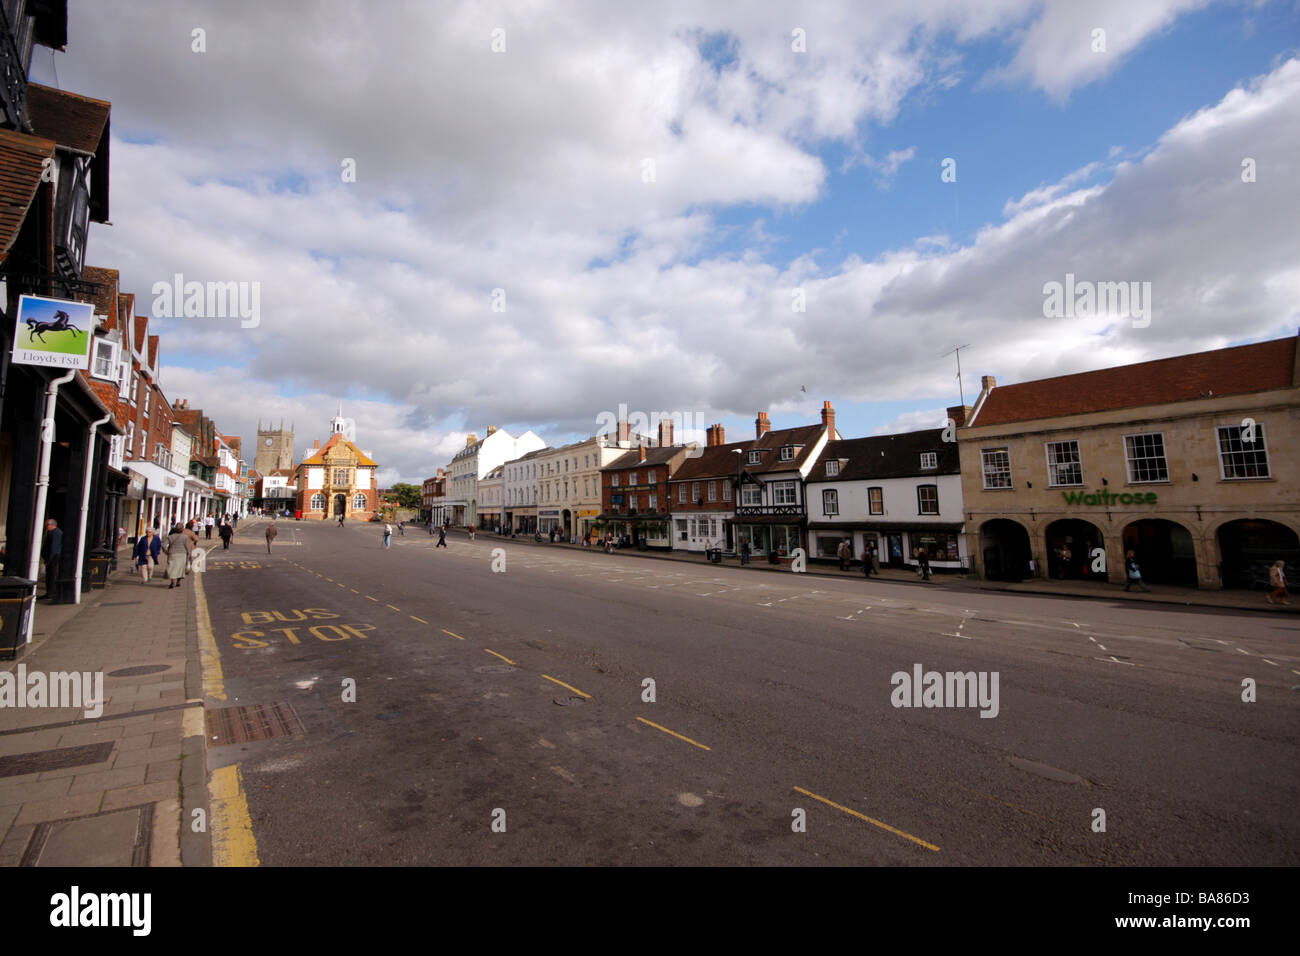 View of empty market place in Marlborough Wiltshire prior to the Autumn Mop fair being installed on 17th October - Stock Image